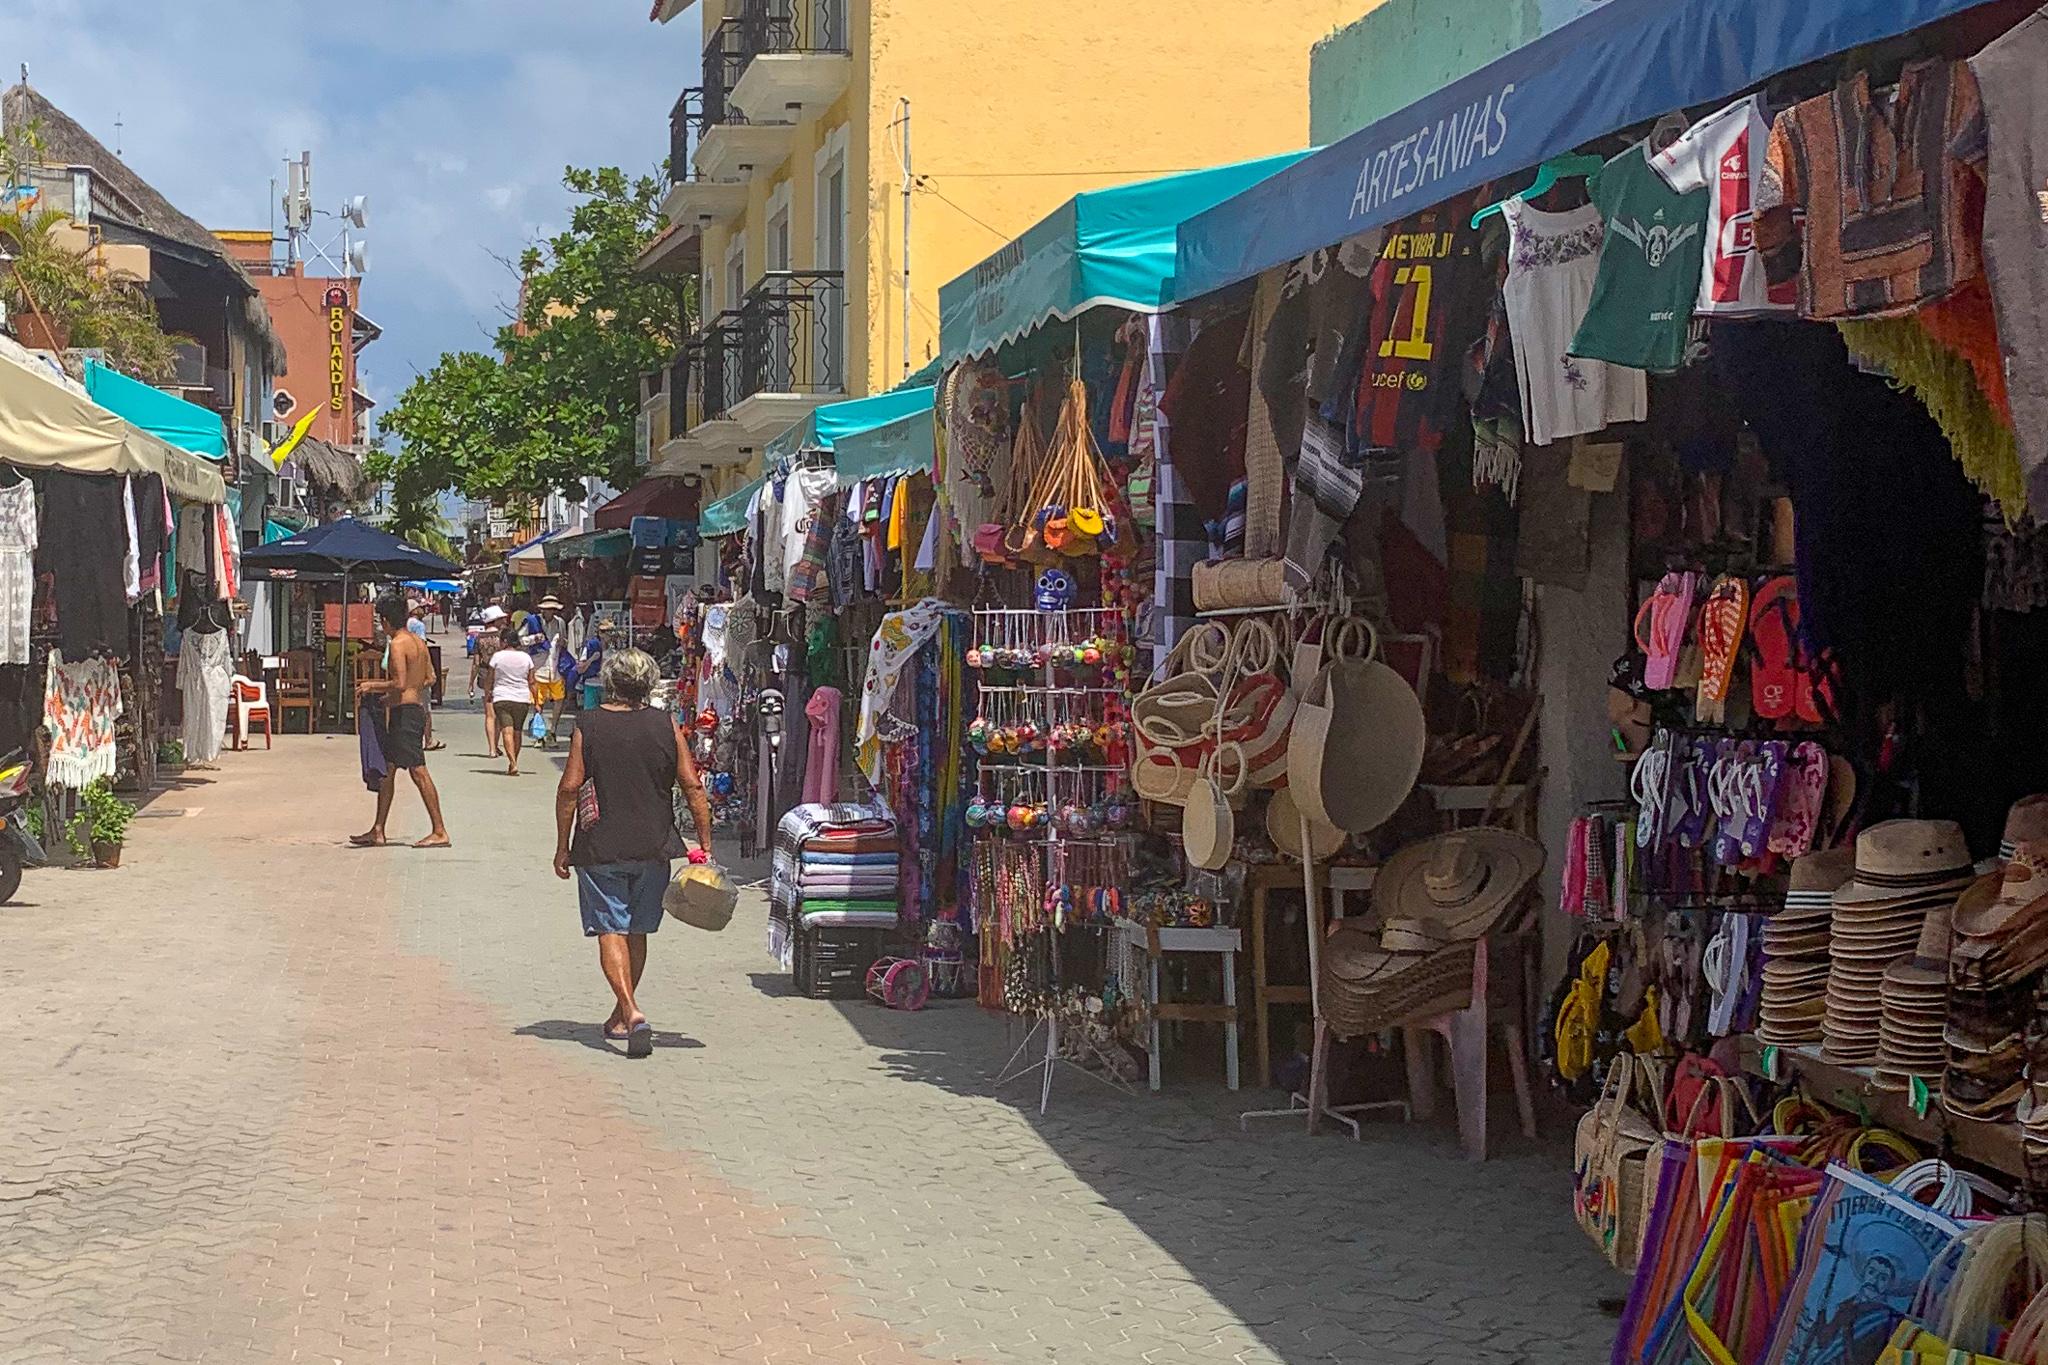 The roads are perfect for golf cart rentals, and the vendors have a ton of cute souvenirs.